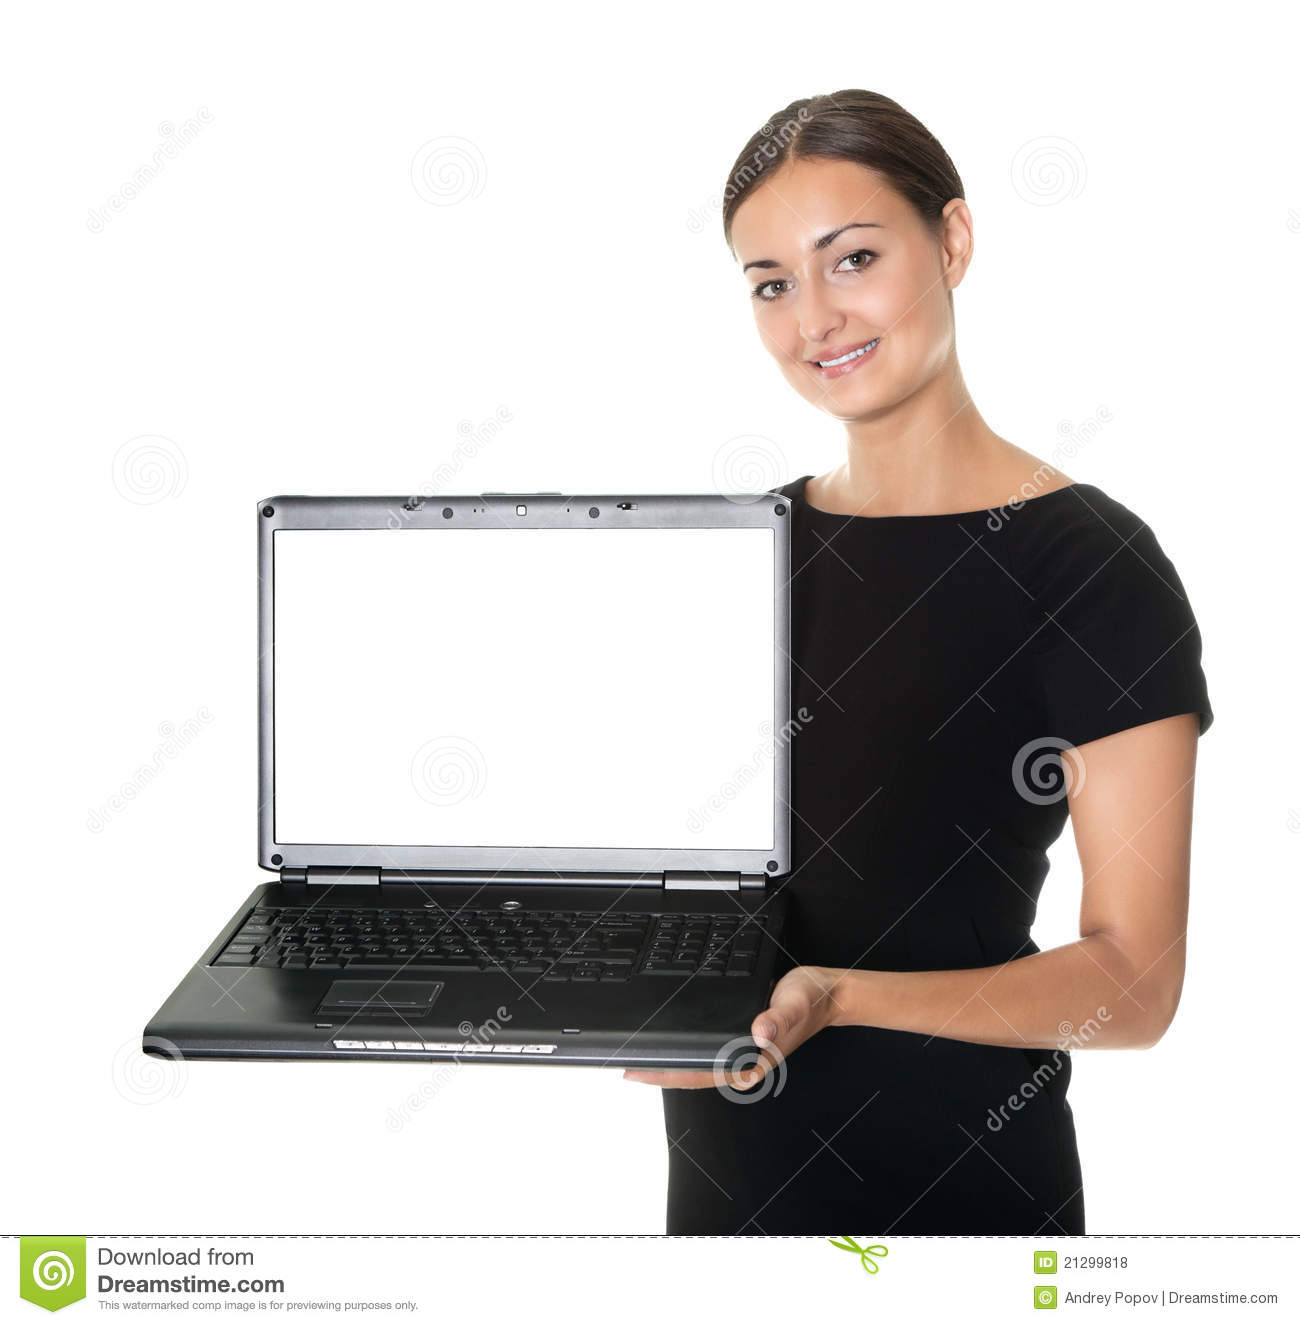 Pretty lady presenting a new laptop on white